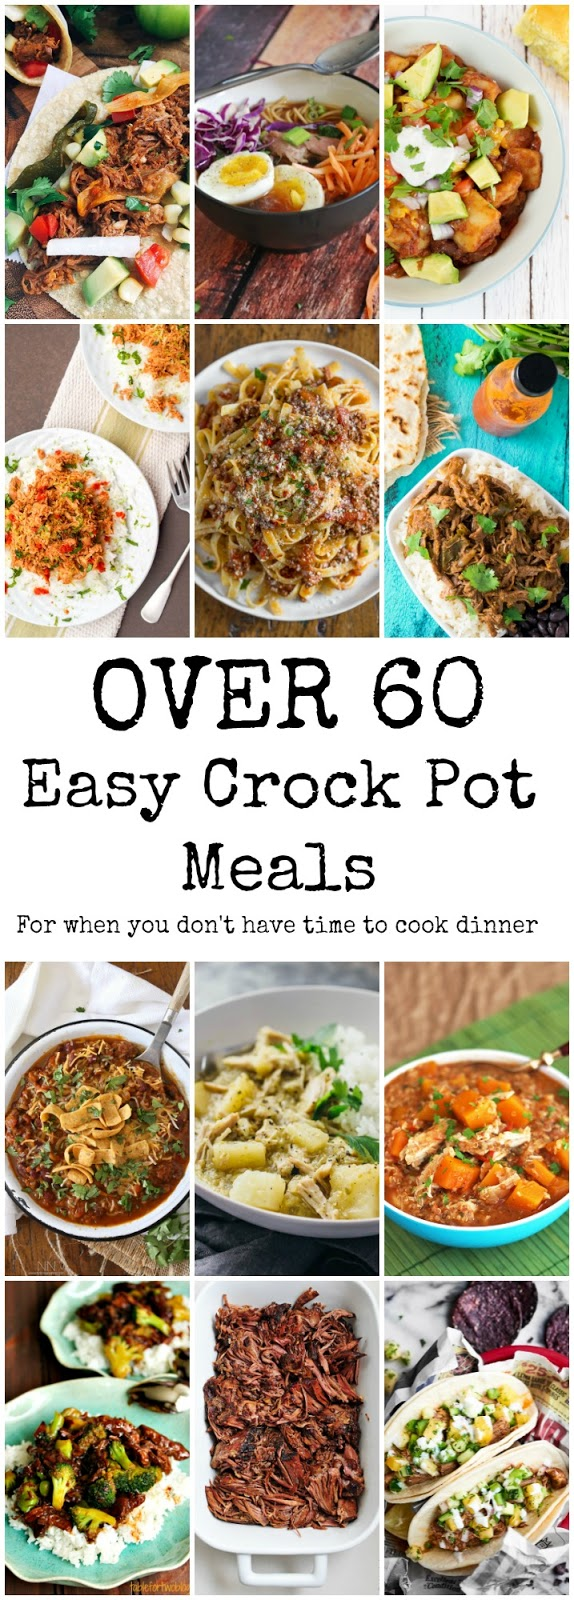 A collection of over 60 of the best crock pot recipes for your family - easy, healthy and perfect for those ultra busy weeknights! Easy Crock Pot Recipes, Family Friendly Slow Cooker recipes,